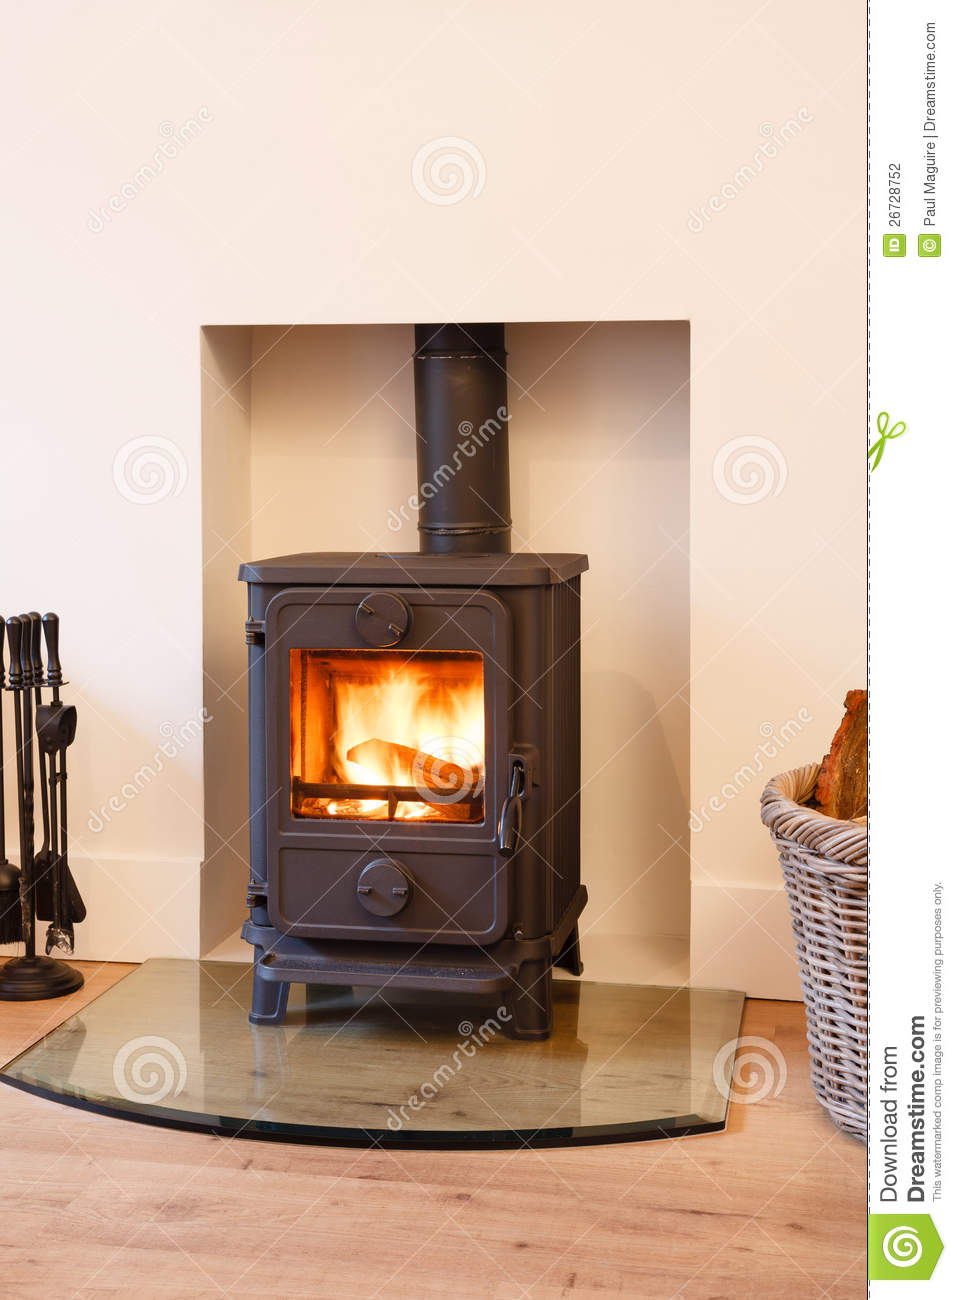 Wood burning stove stock photo. Image of flue, fireside ...